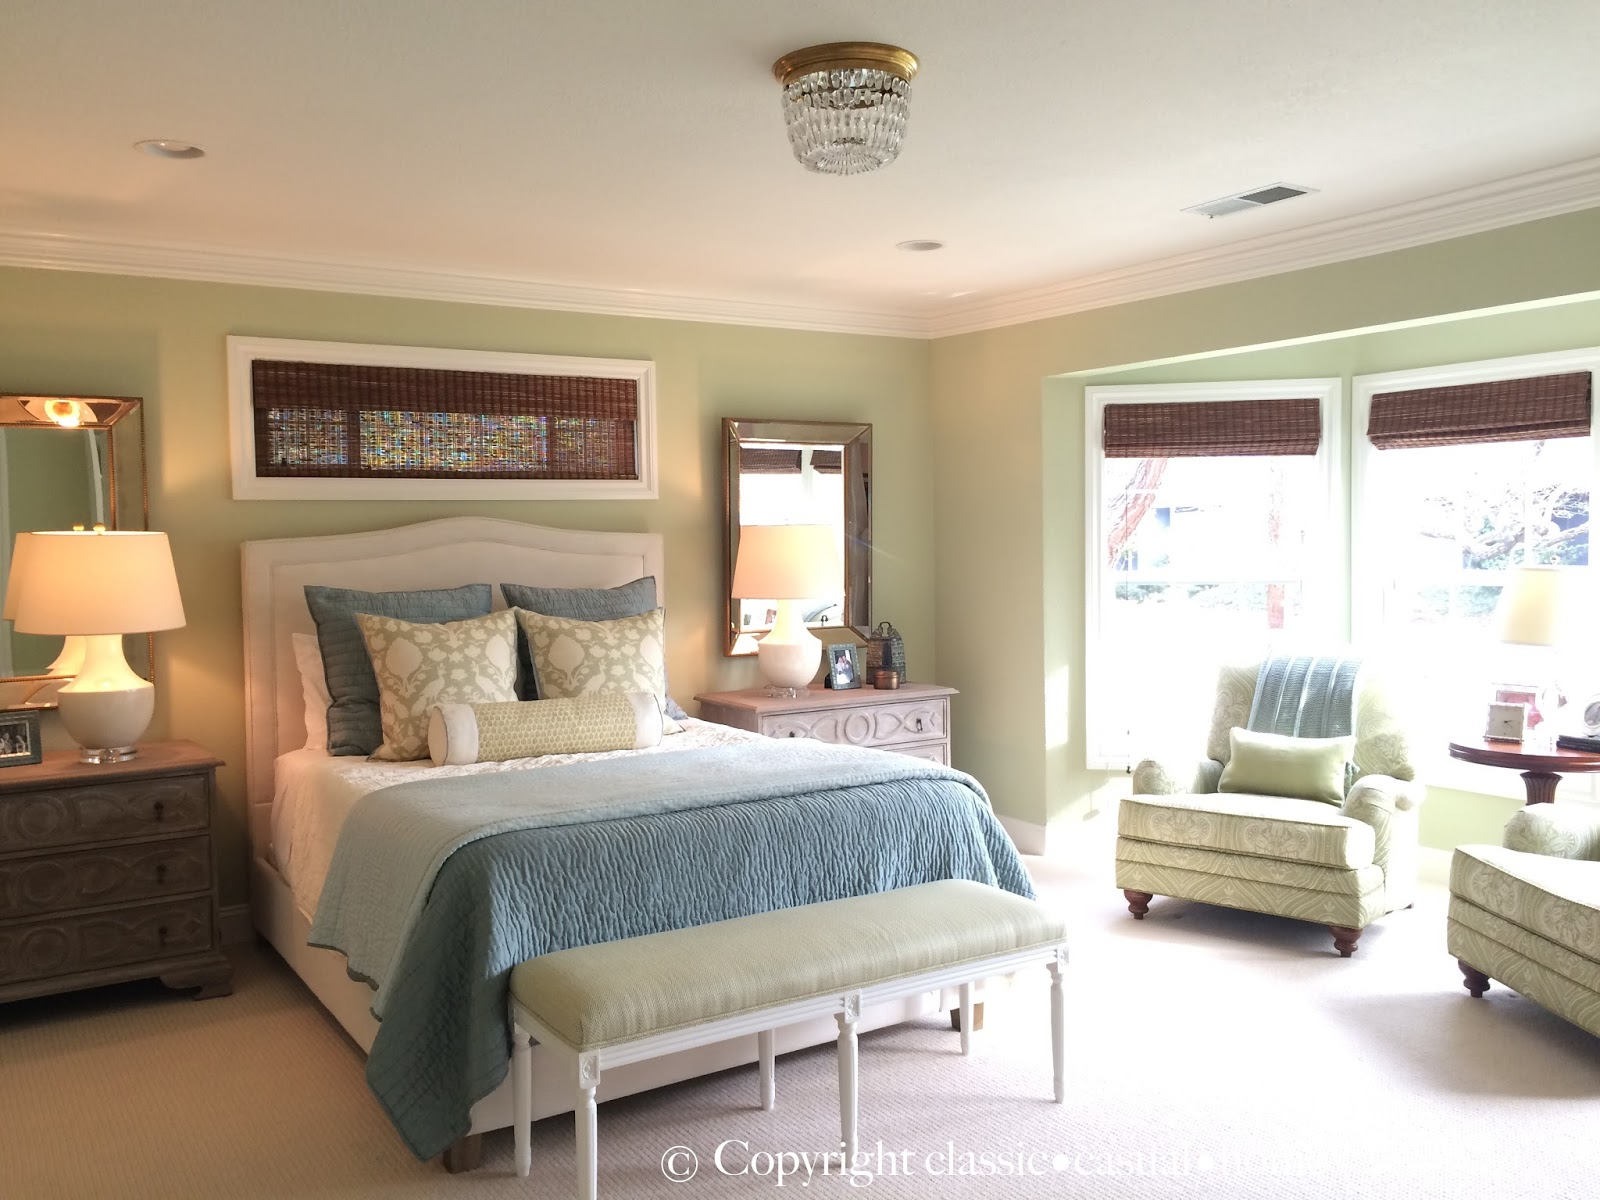 Hollingsworth green favorite paint colors blog - Master bedroom and bathroom paint colors ...